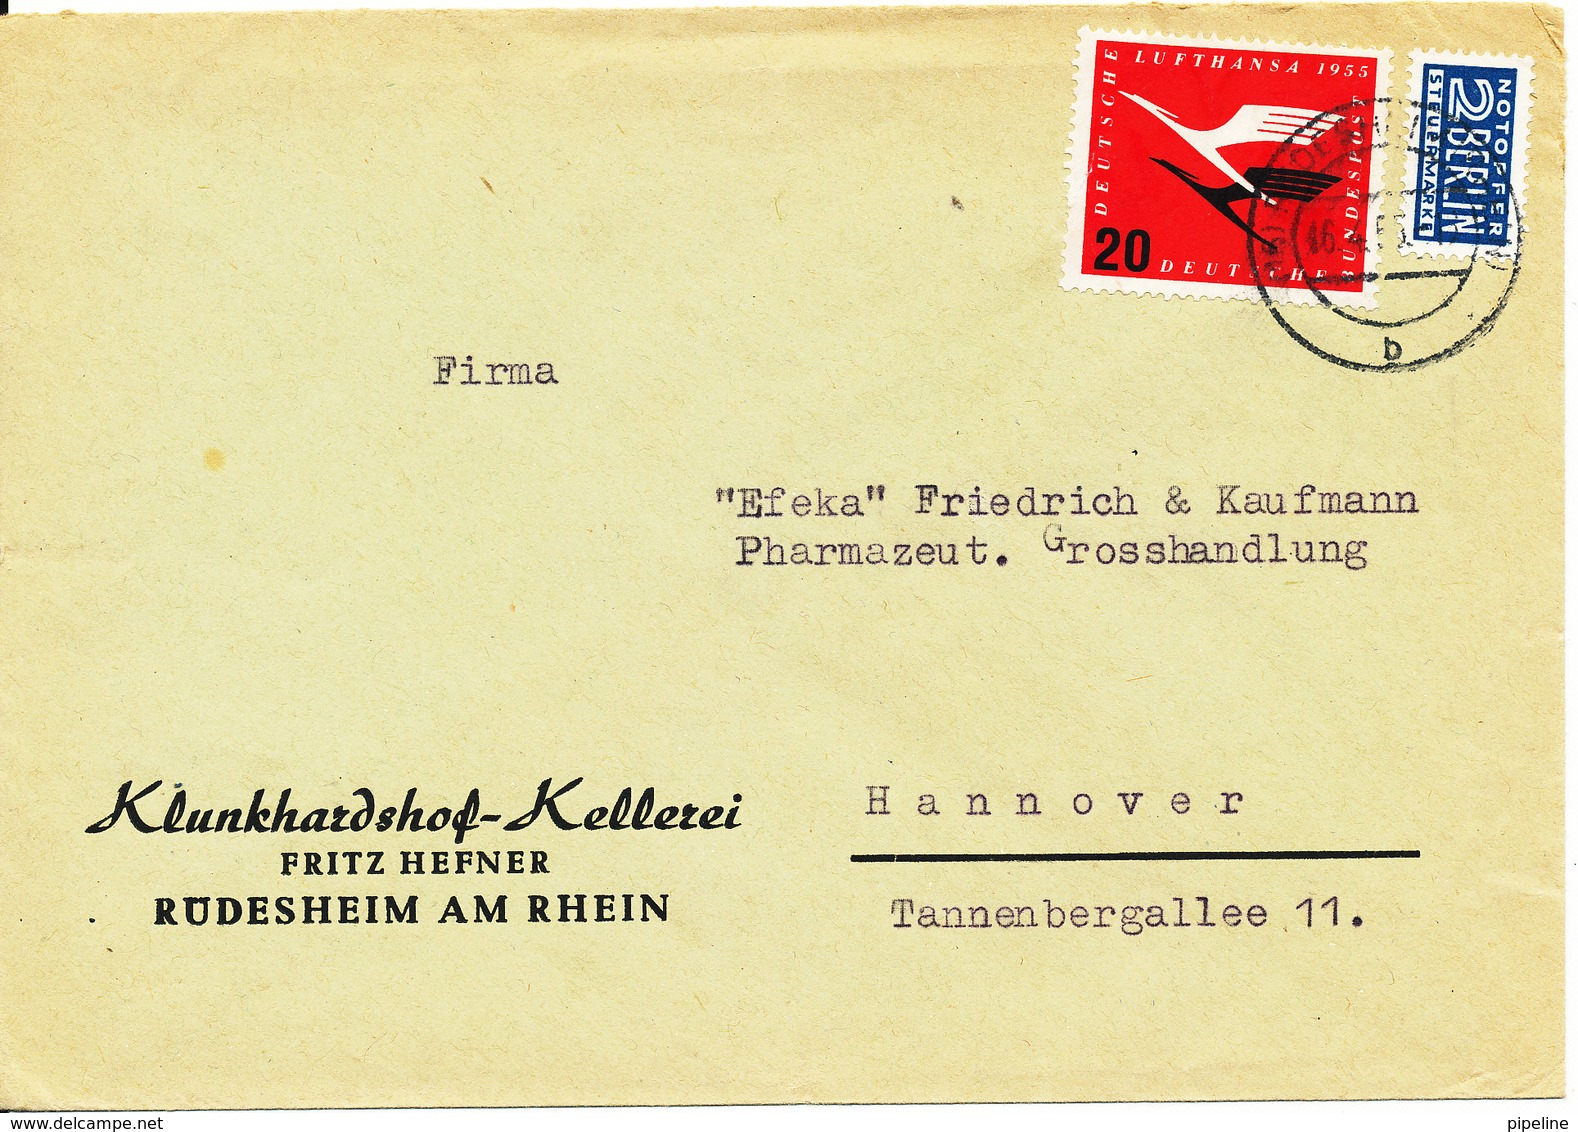 Germany Cover 16-4-1955 With Lufthansa 20 Pf. (the Stamp Is Damaged) - [7] Federal Republic